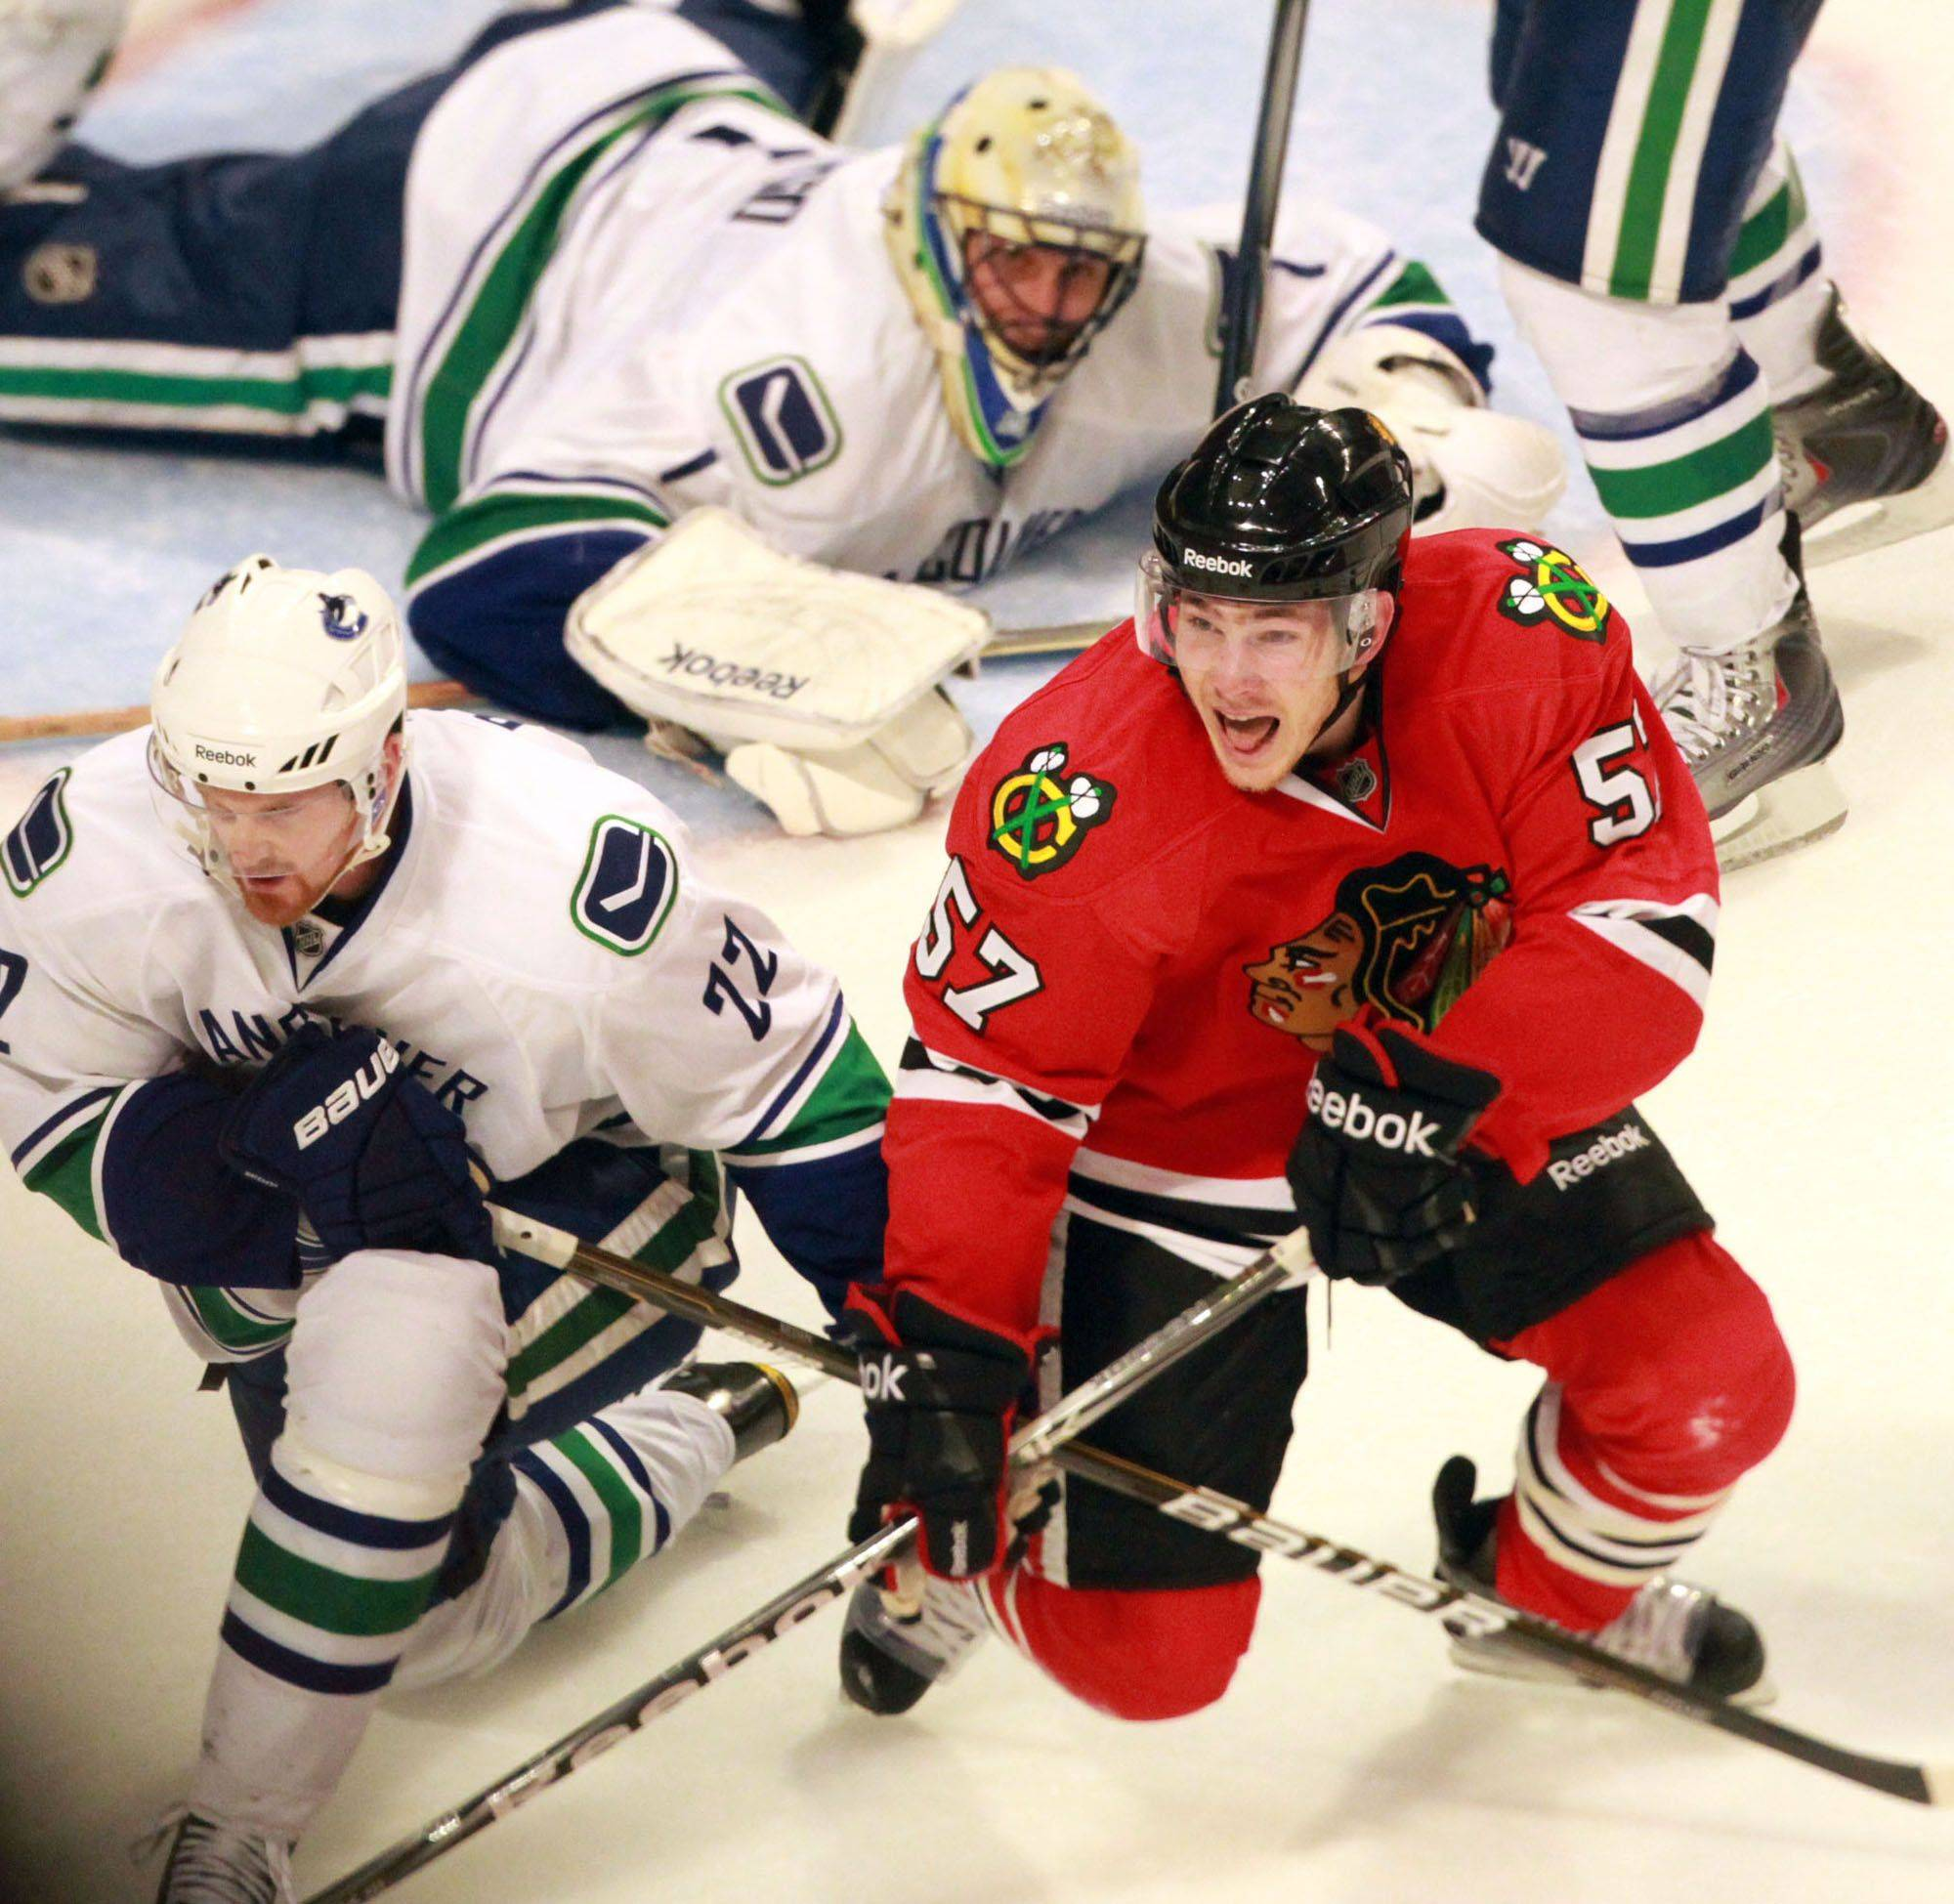 Smith's goal in overtime gives Hawks one last shot